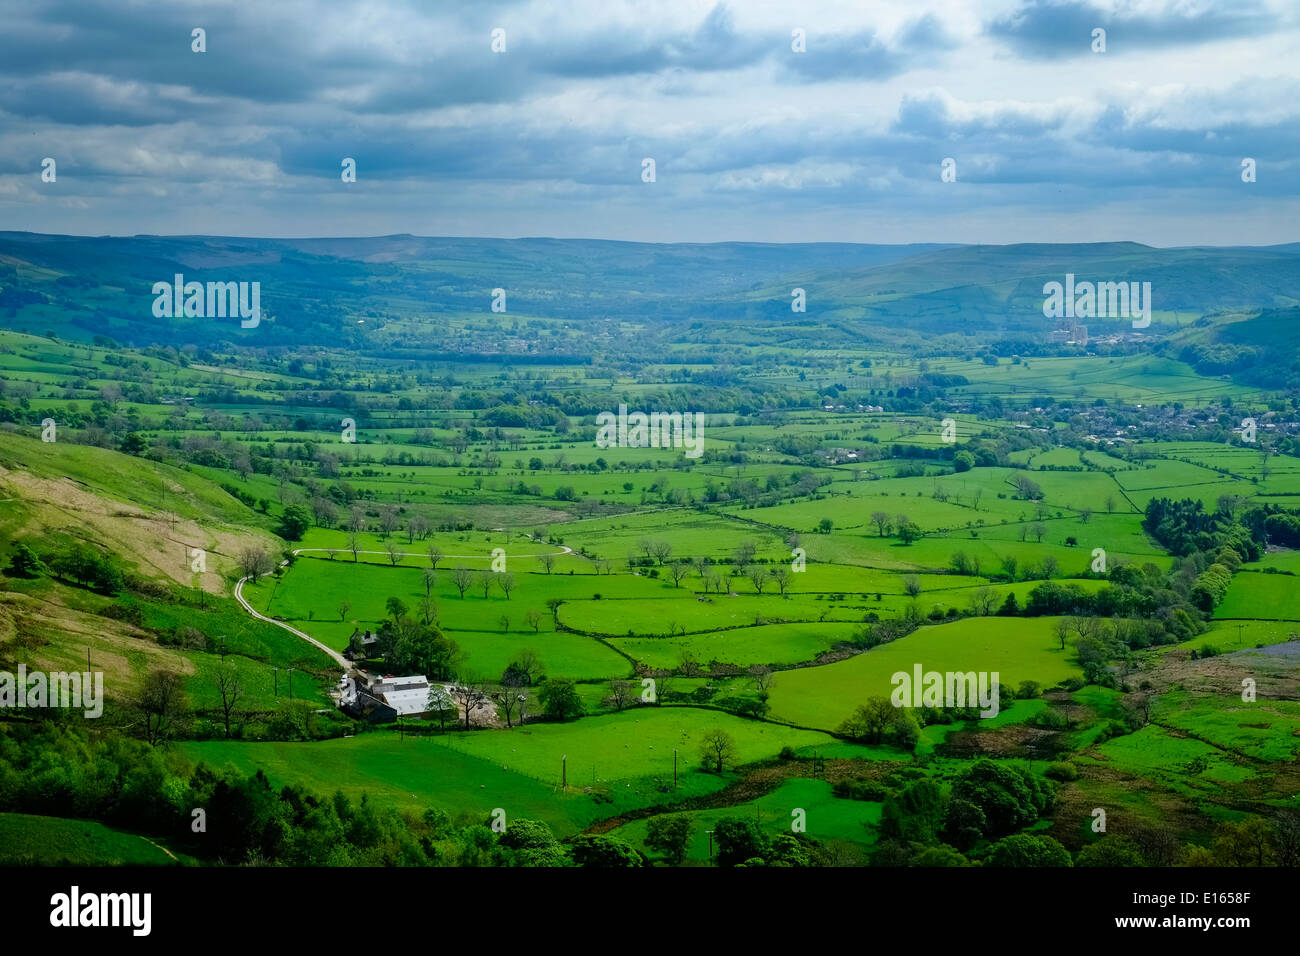 View of the Hope Valley, Peak District National Park, Derbyshire, England, May - Stock Image